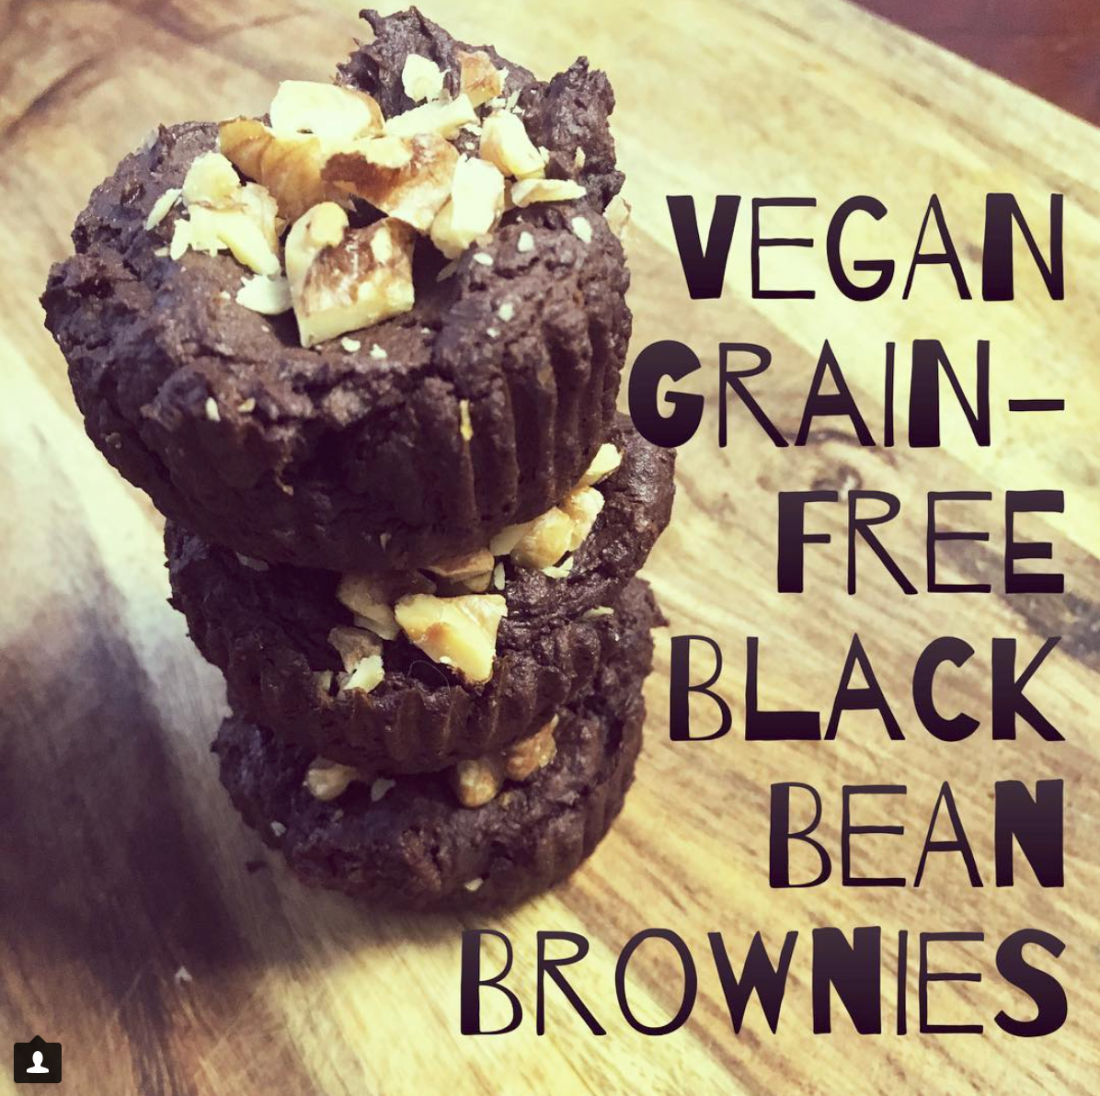 Gorgeous food photography of vegan grain free black bean brownies with chopped walnuts stacked on a cutting board